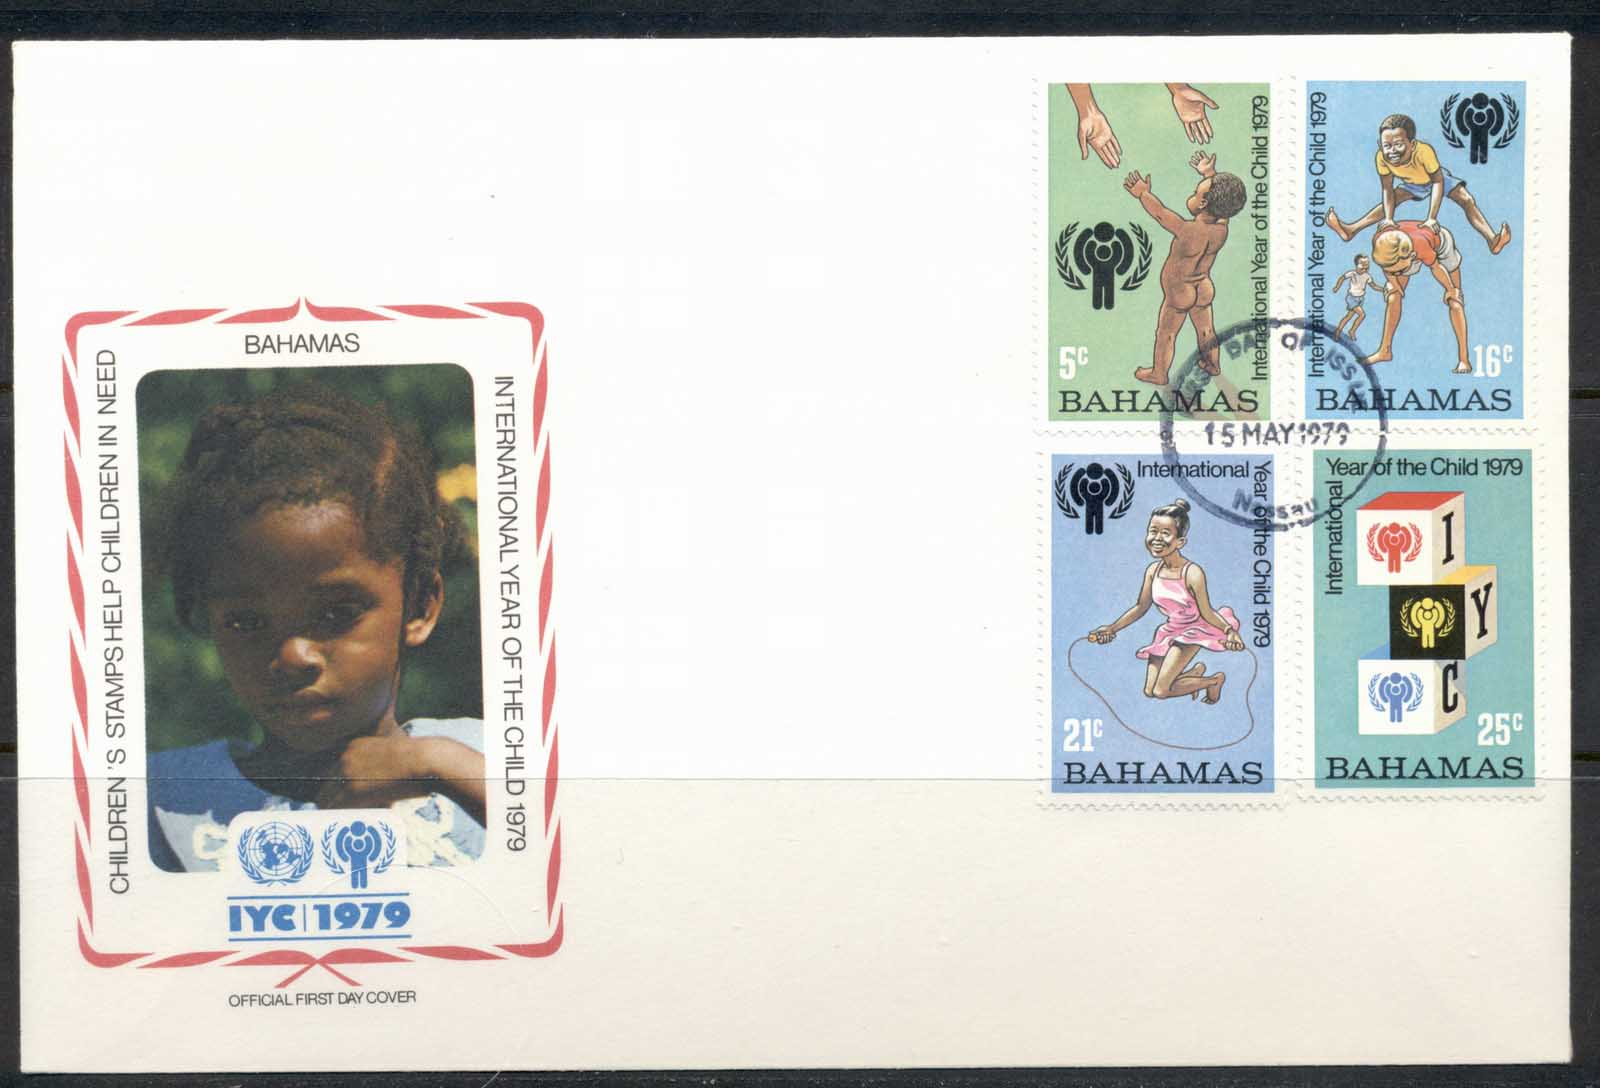 Bahamas 1979 IYC International year of the Child FDC